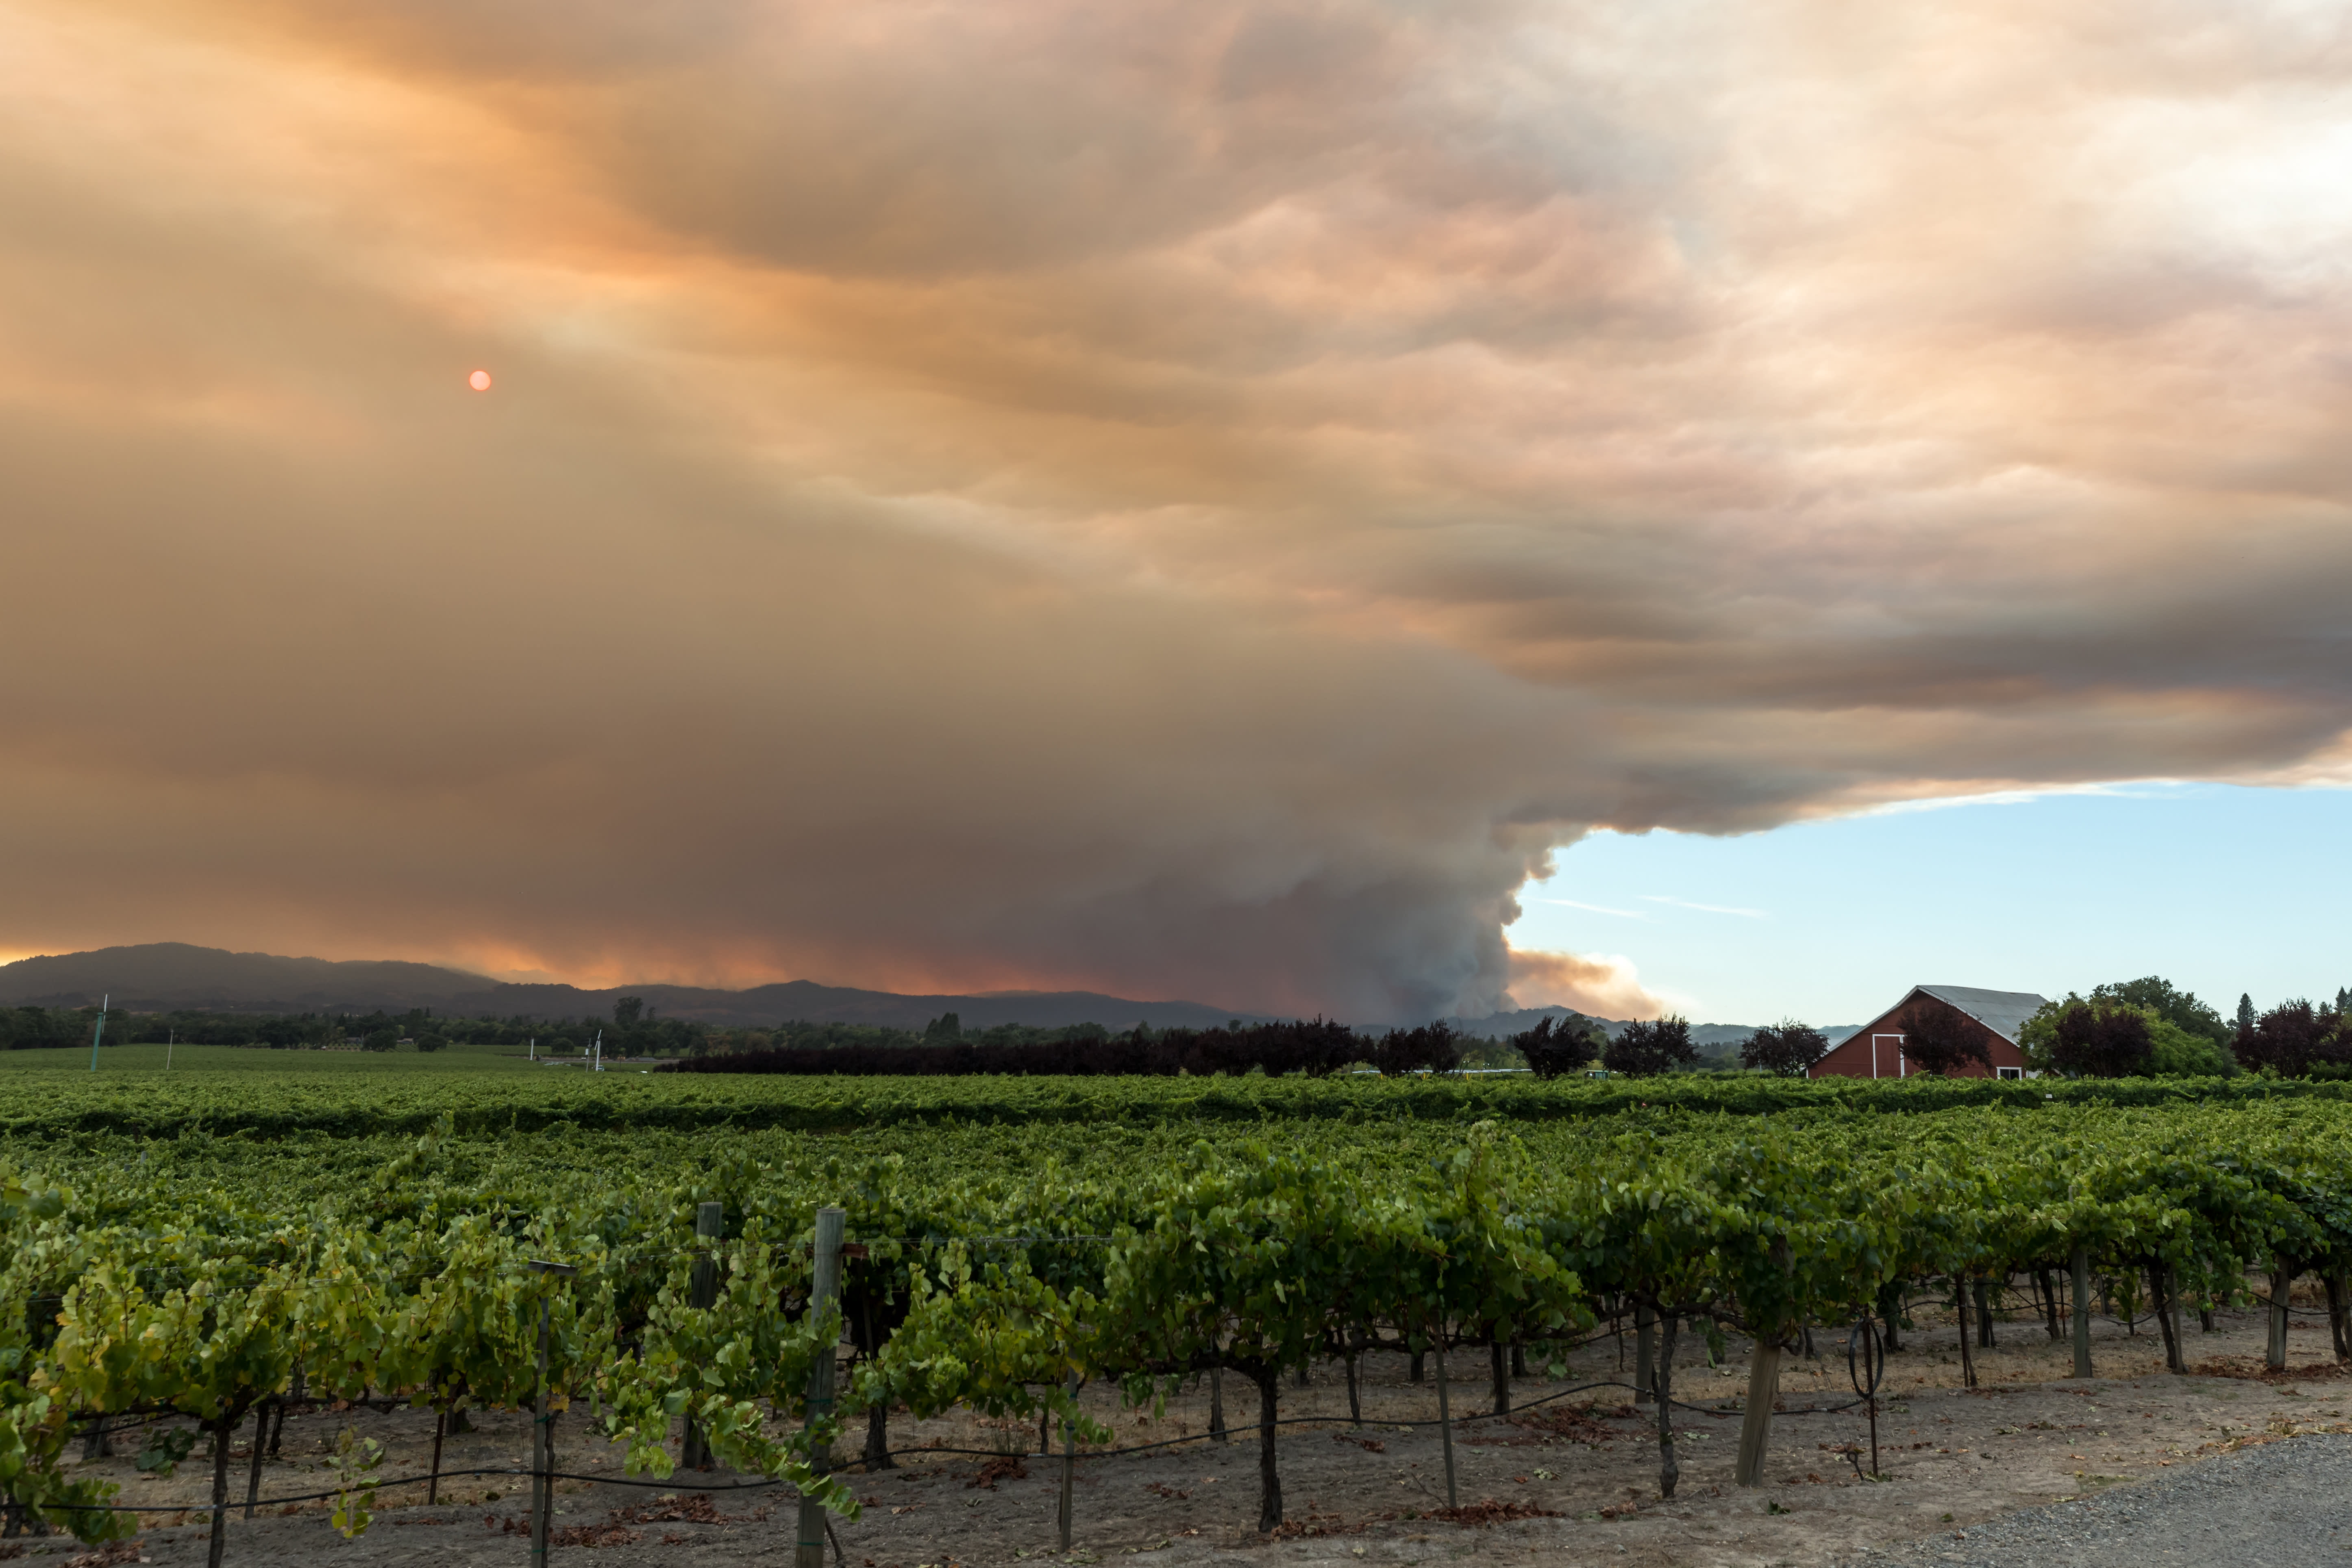 How Wildfires Have Endangered the Wine Industry